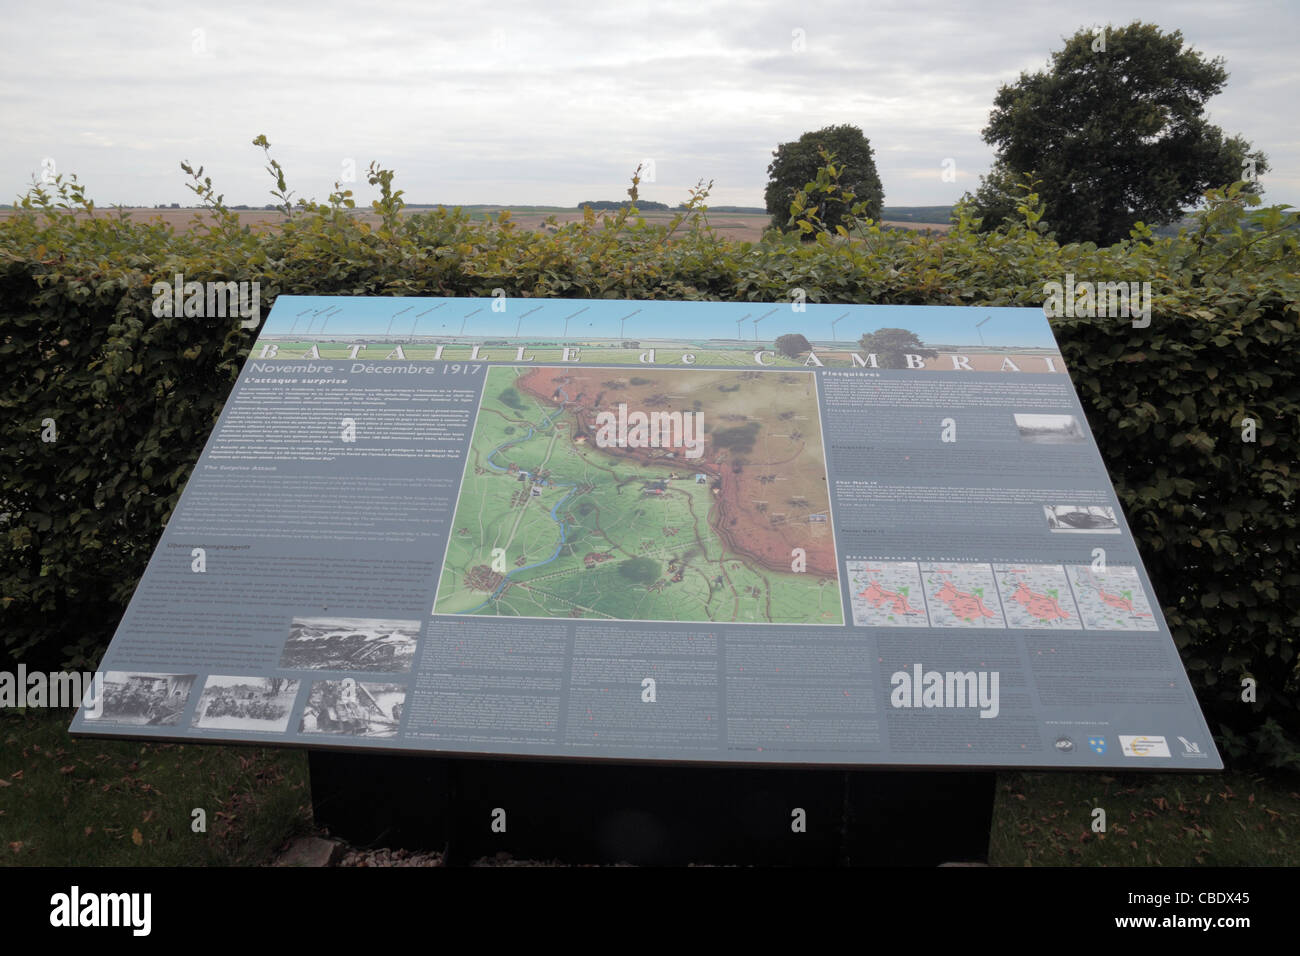 Tourist information board beside the Tank Memorial (Battle of Cambrai Nov-Dec 1917) near Flesquieres, Cambrai, France. - Stock Image